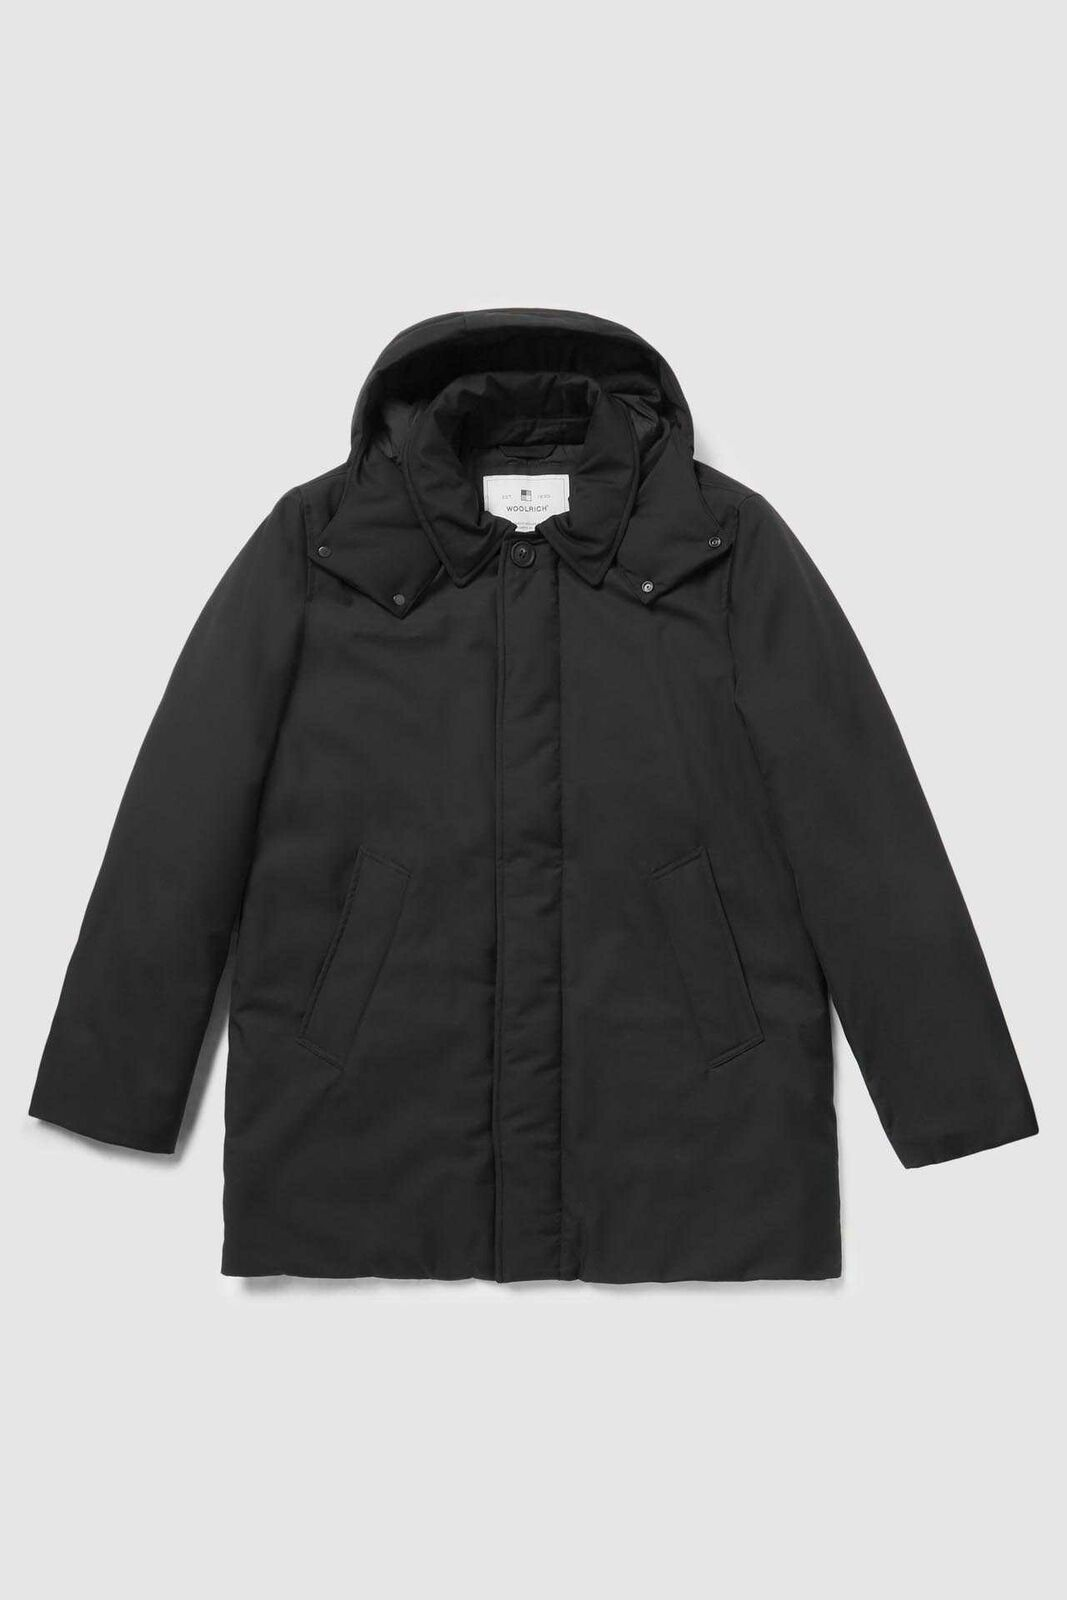 PARKA UOMO-WOOLRICH-WOOU0258MR-BARROW MAC-BLACK